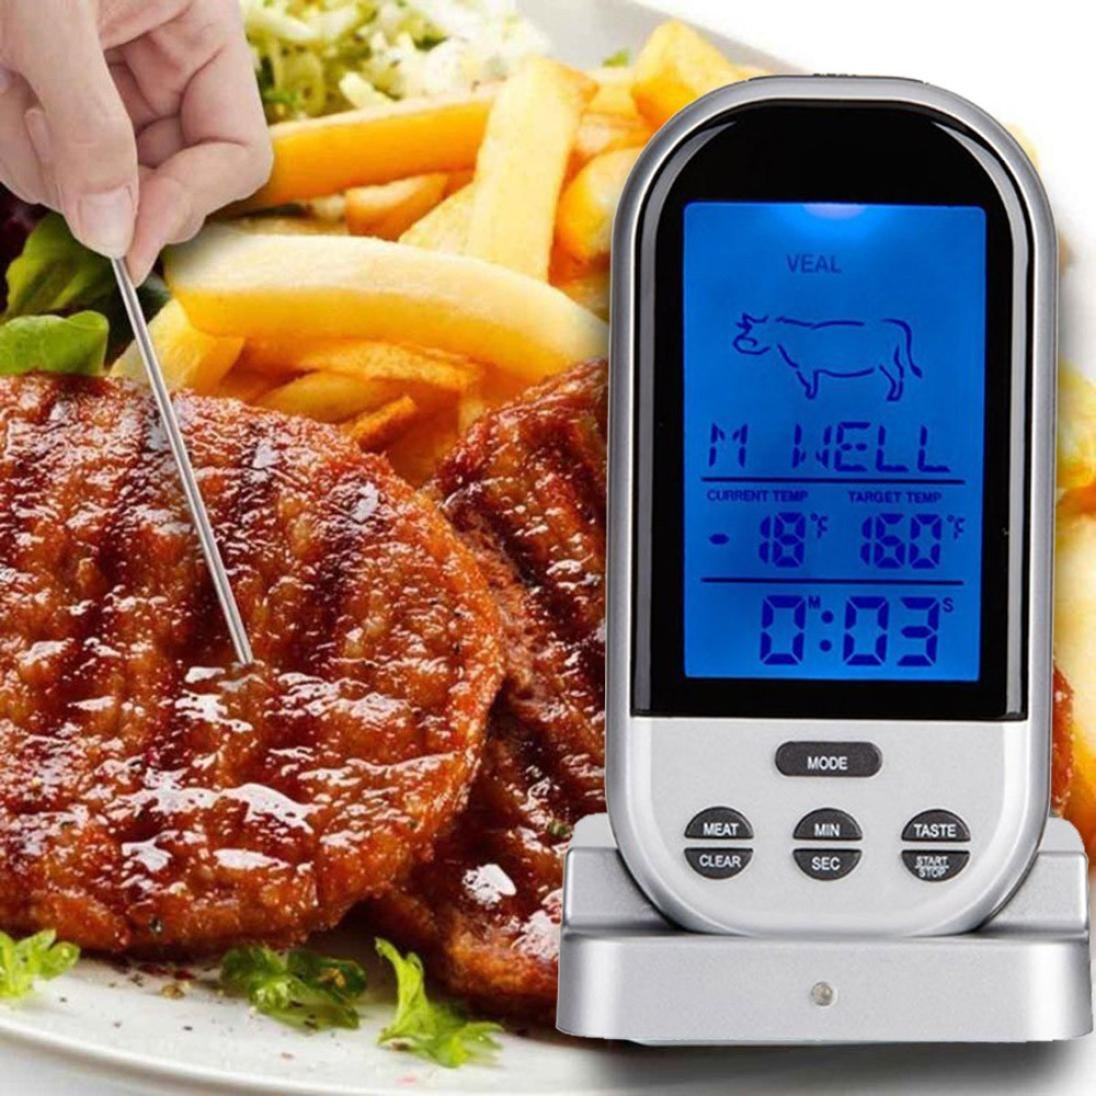 Transer Wireless Remote Large LCD Digital Cooking Food Meat Thermometer Clock Timer with Stainless Steel Temperature Probe For Kitchen BBQ Grill Smoker Oven Food Cooking (Silver)